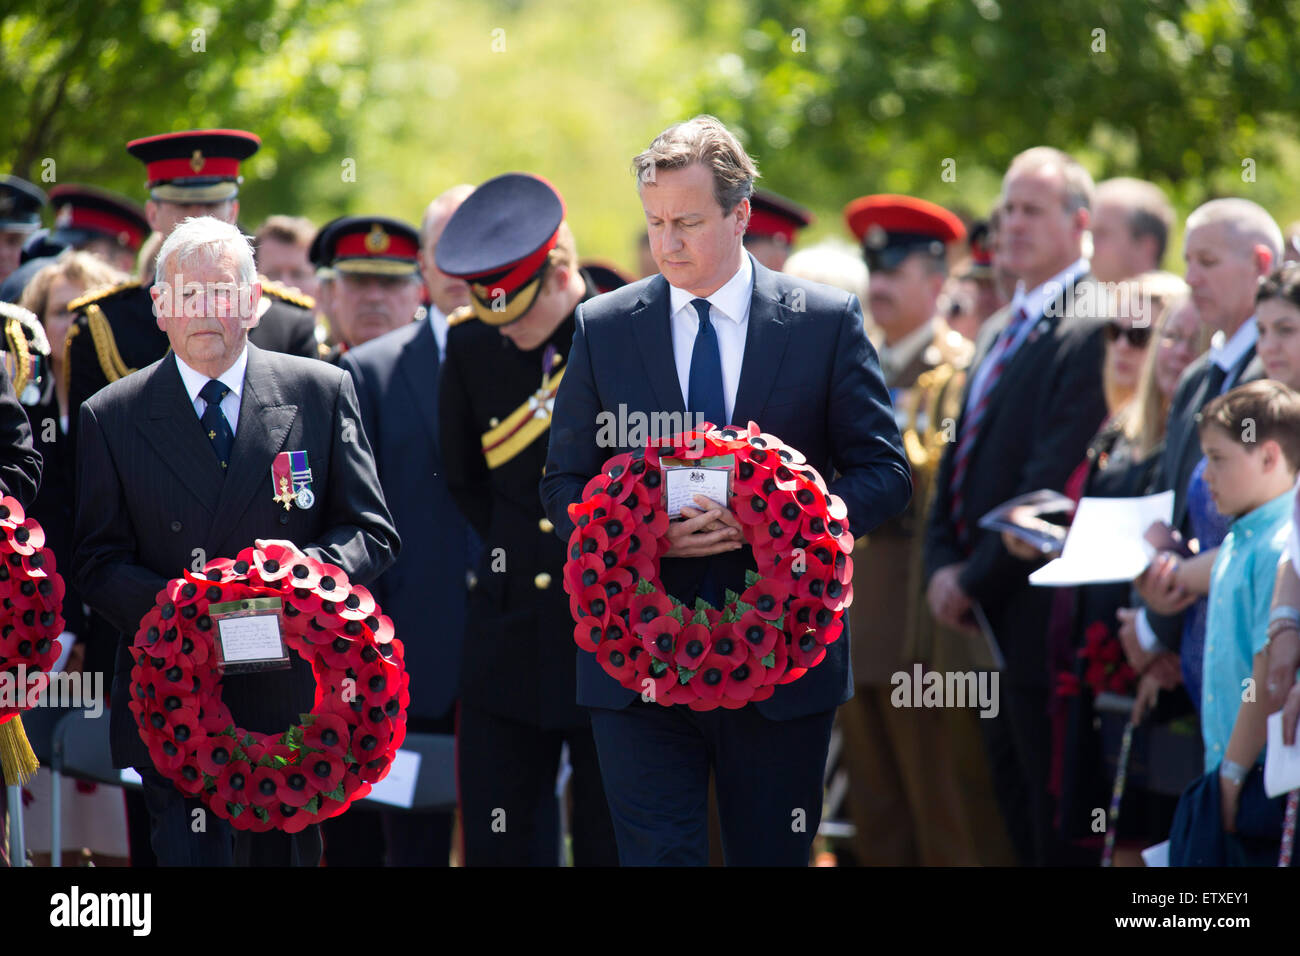 David Cameron, centre, lays a wreath during the service of rededication of the Bastion Wall at the National memorial - Stock Image